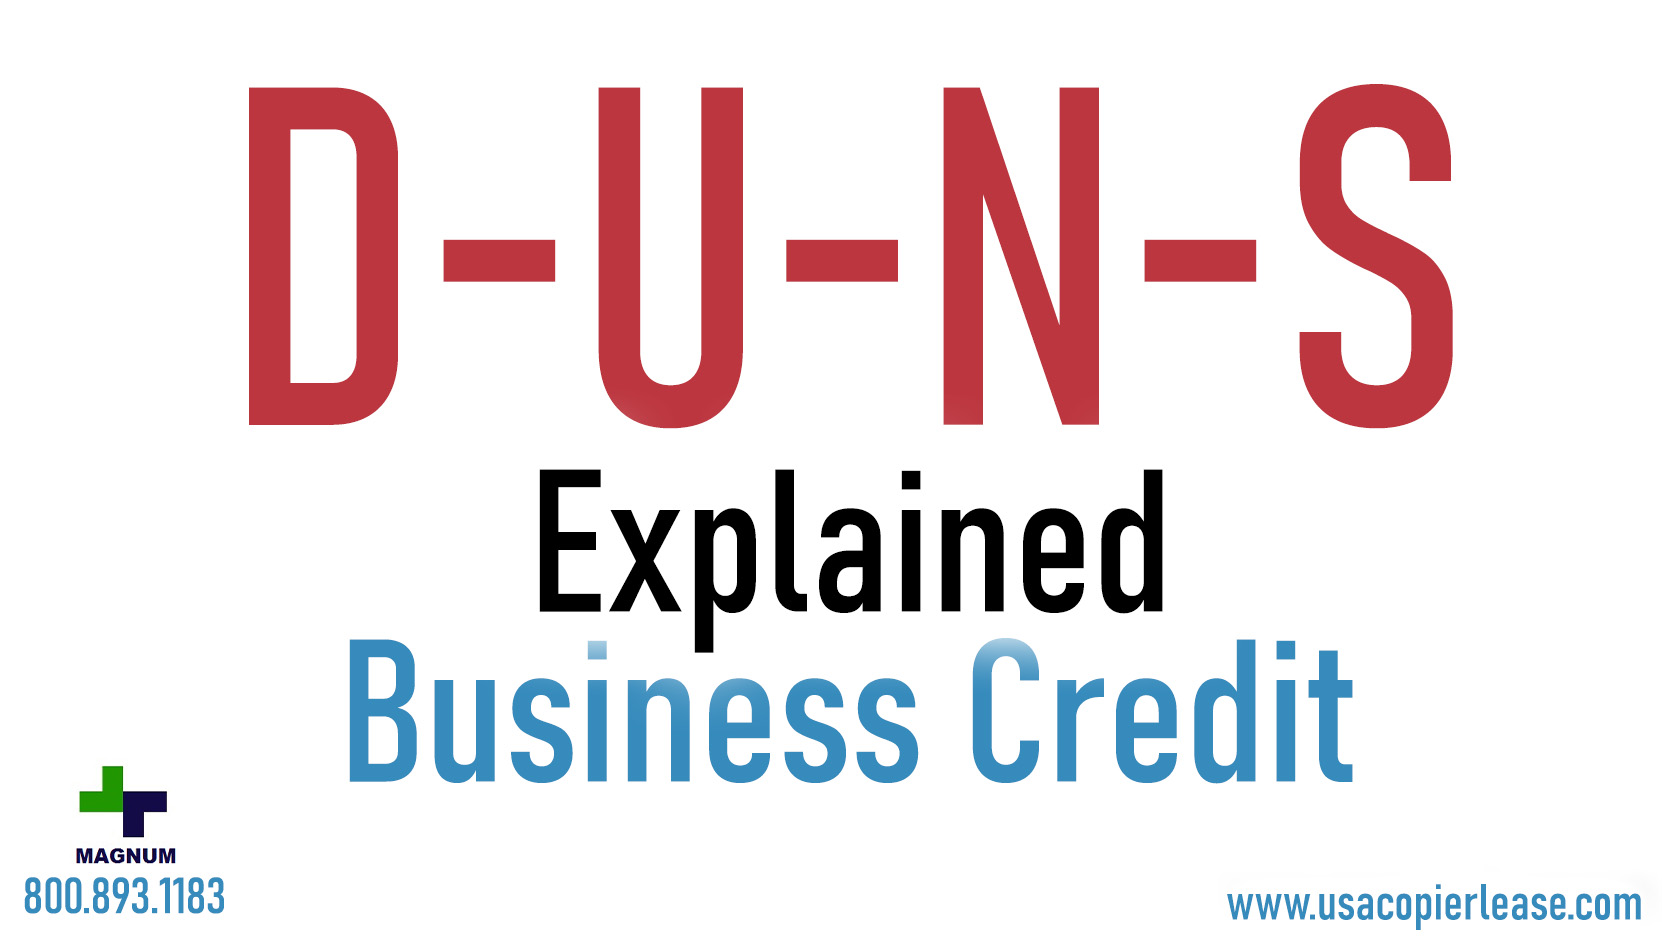 How do leasing companies check a business credit?